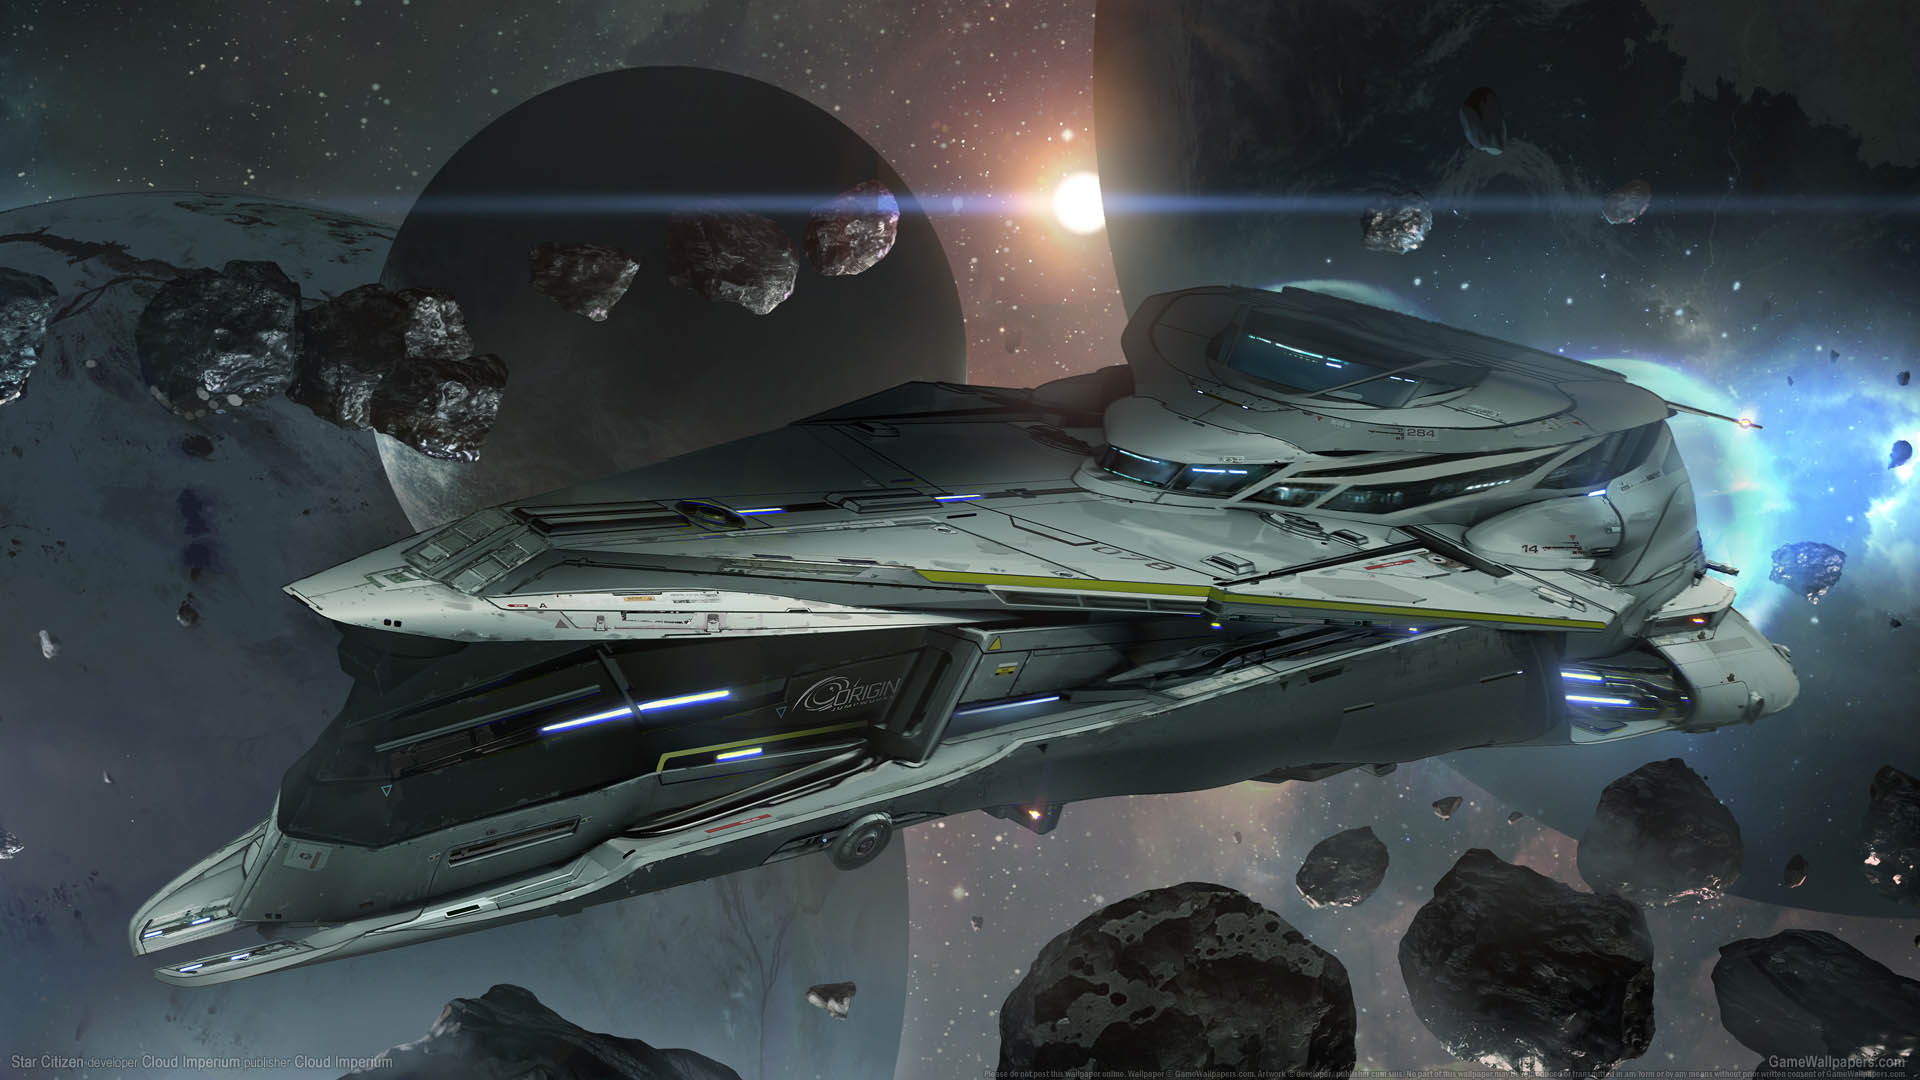 Star Citizen Wallpaper 1080p: Star Citizen Wallpaper 13 1920x1080